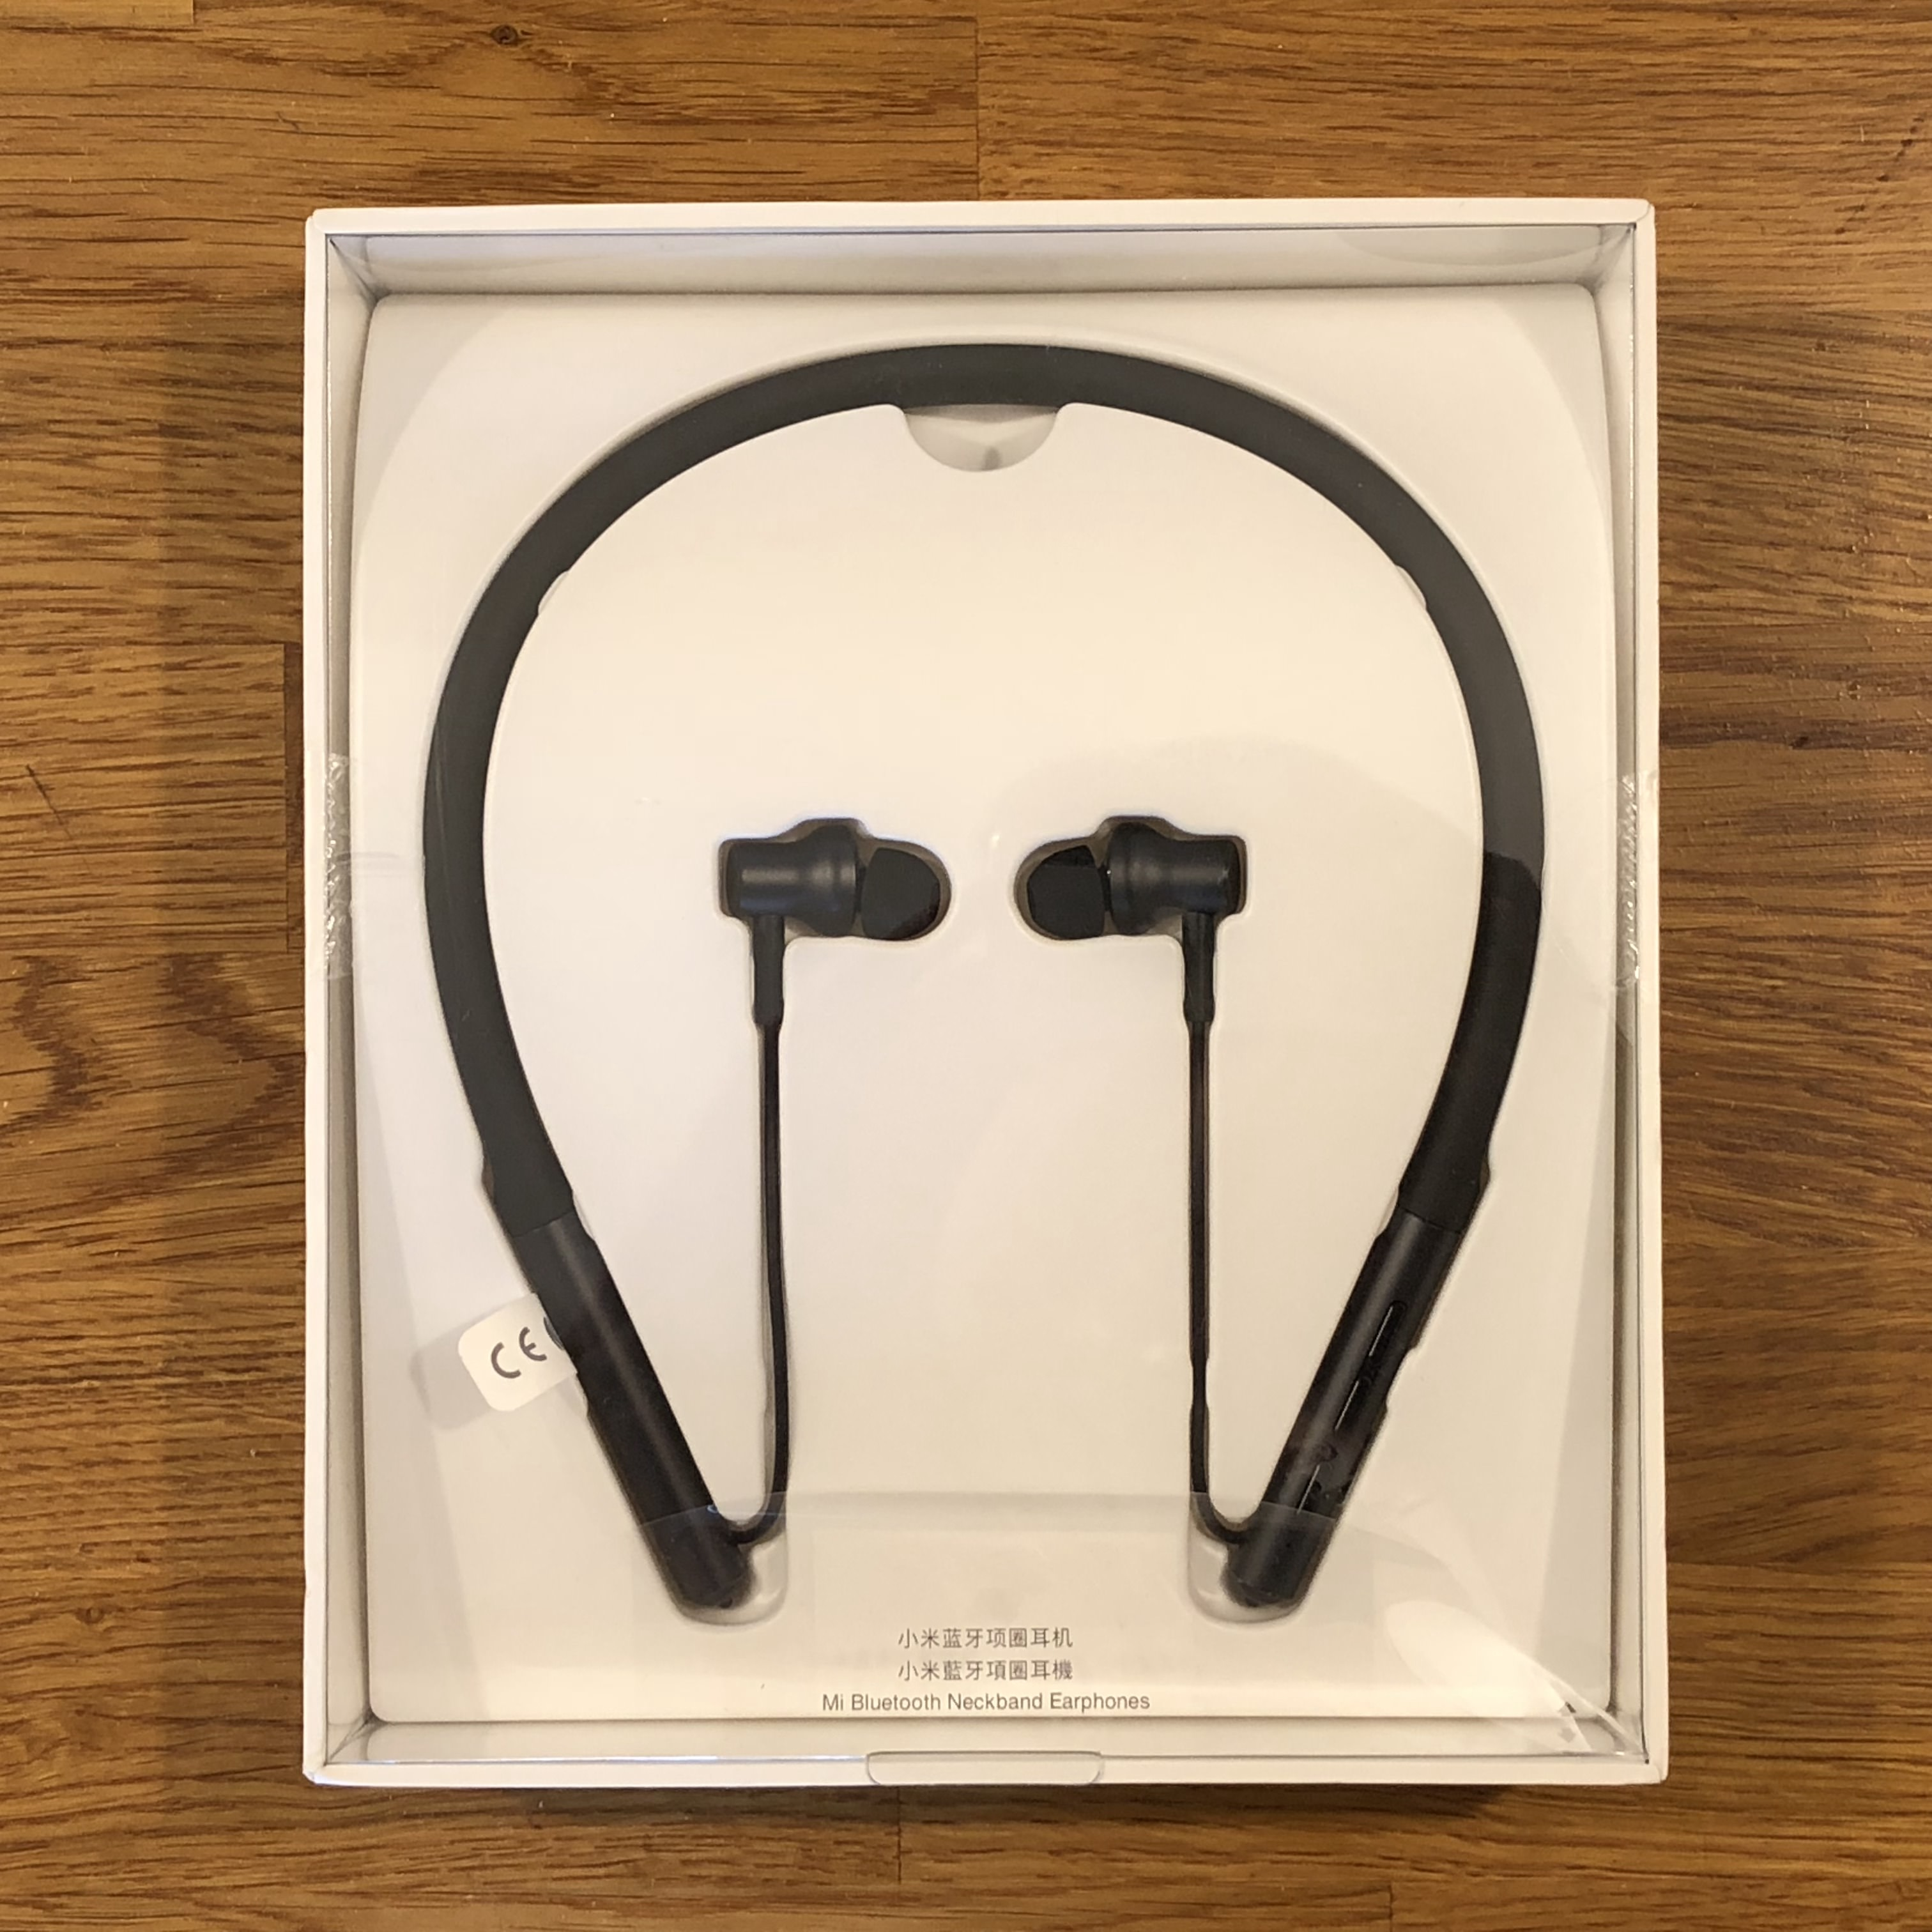 Mi Bluetooth Neckband Earphone (LYXQEJ01JY)